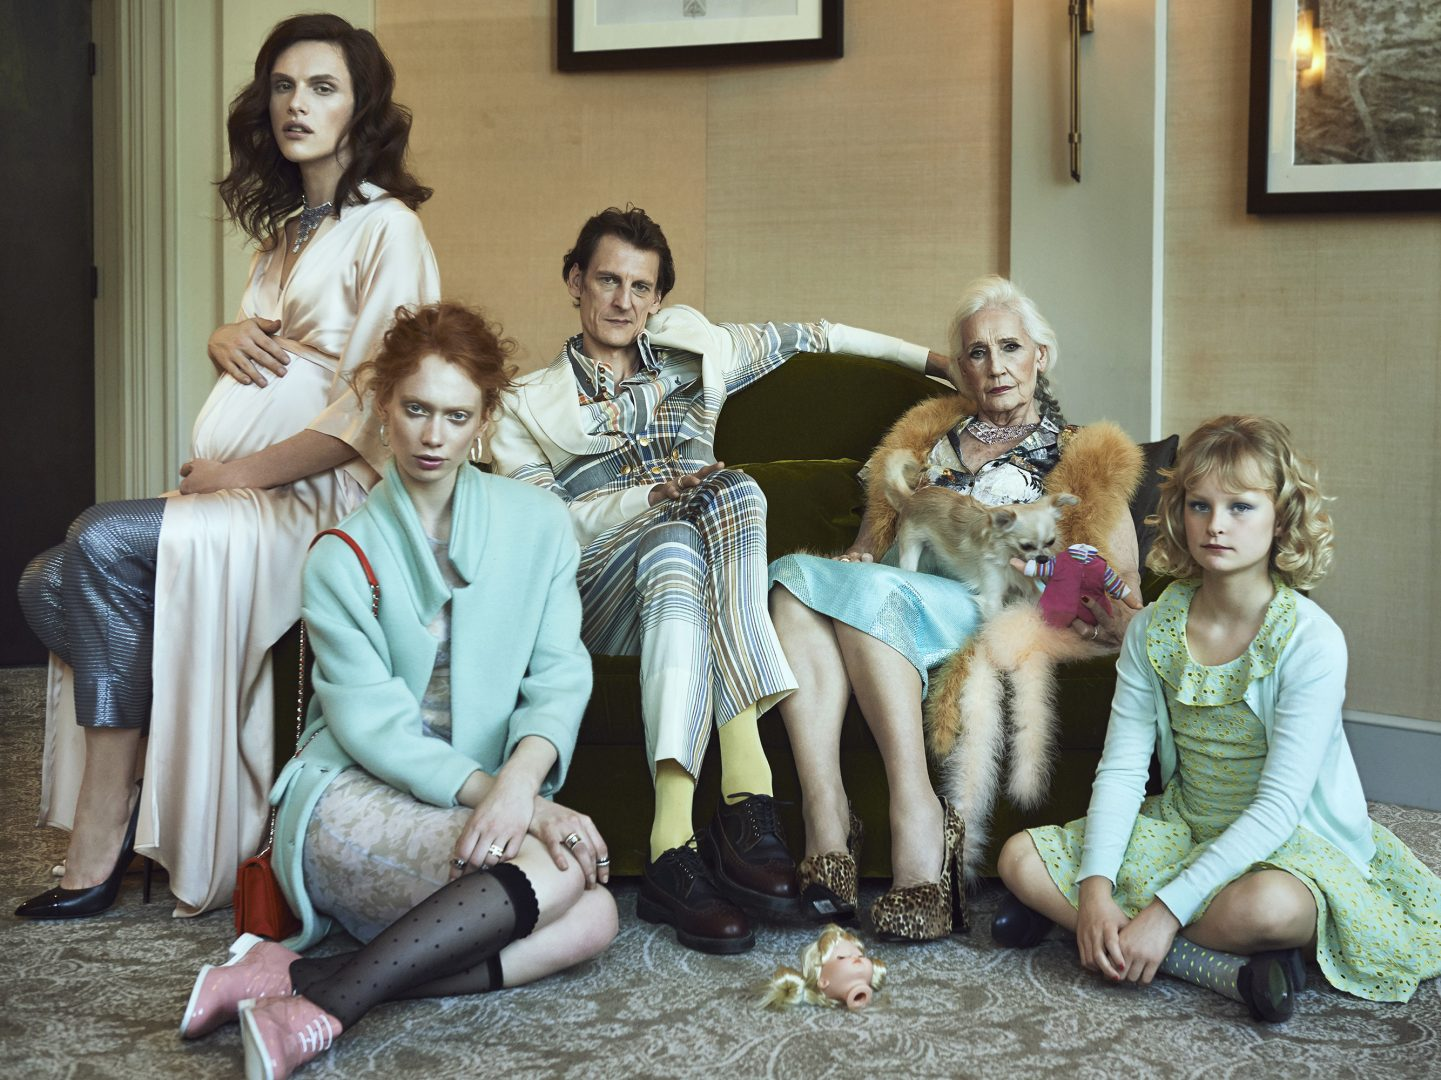 Group shoot of modern family by Stefan Rappo